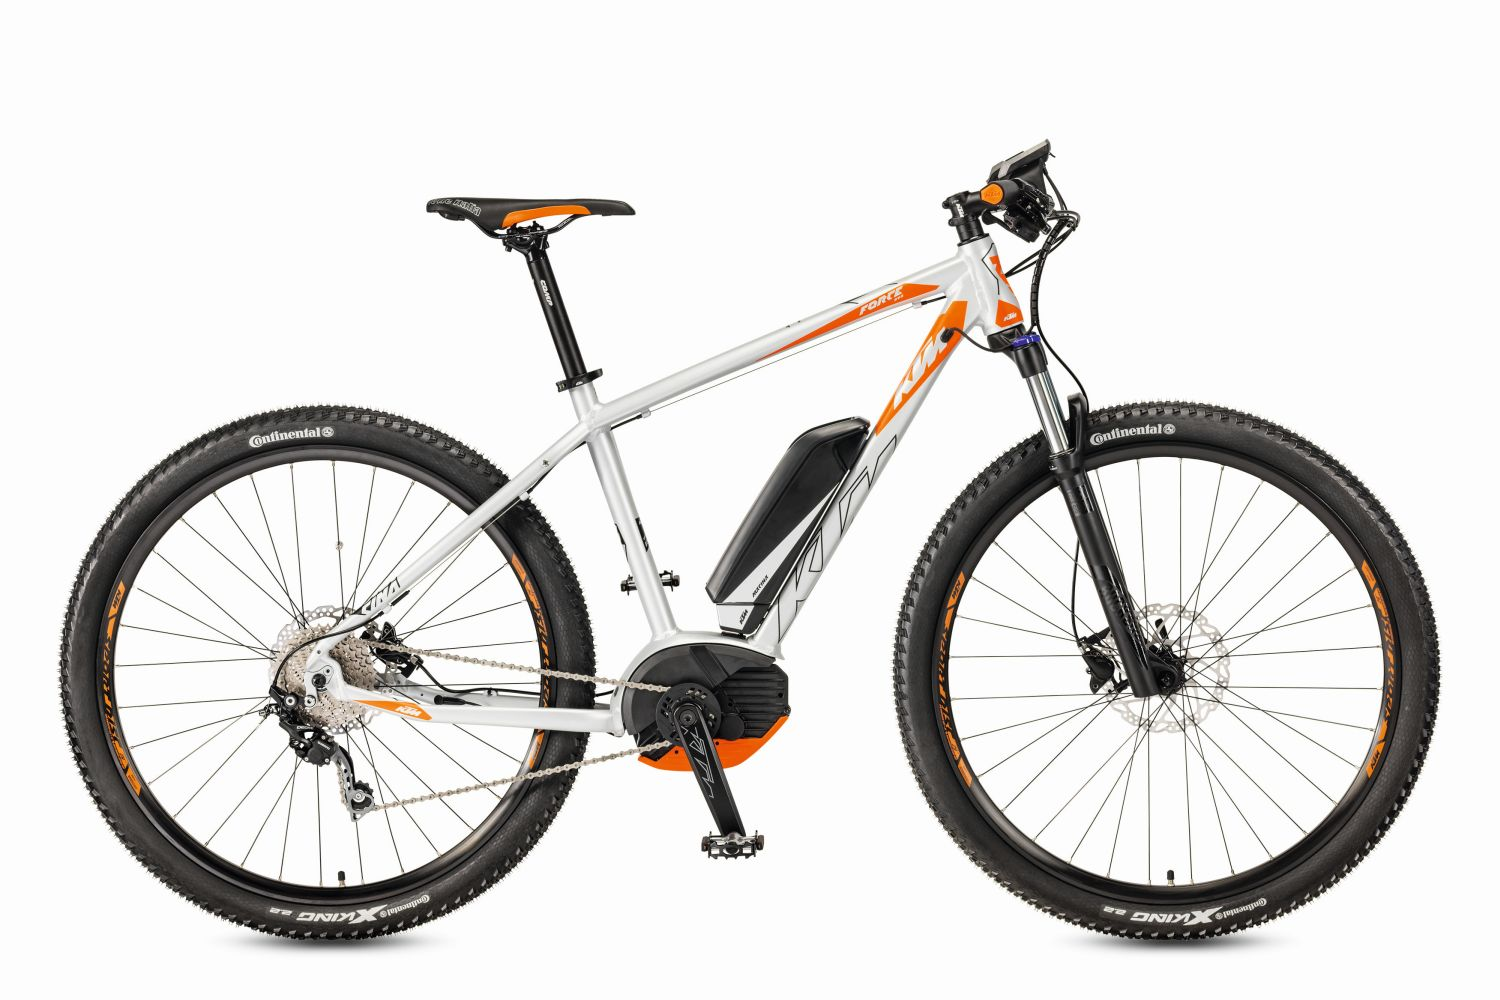 ktm e bike macina force 272 cx5 bosch bike. Black Bedroom Furniture Sets. Home Design Ideas